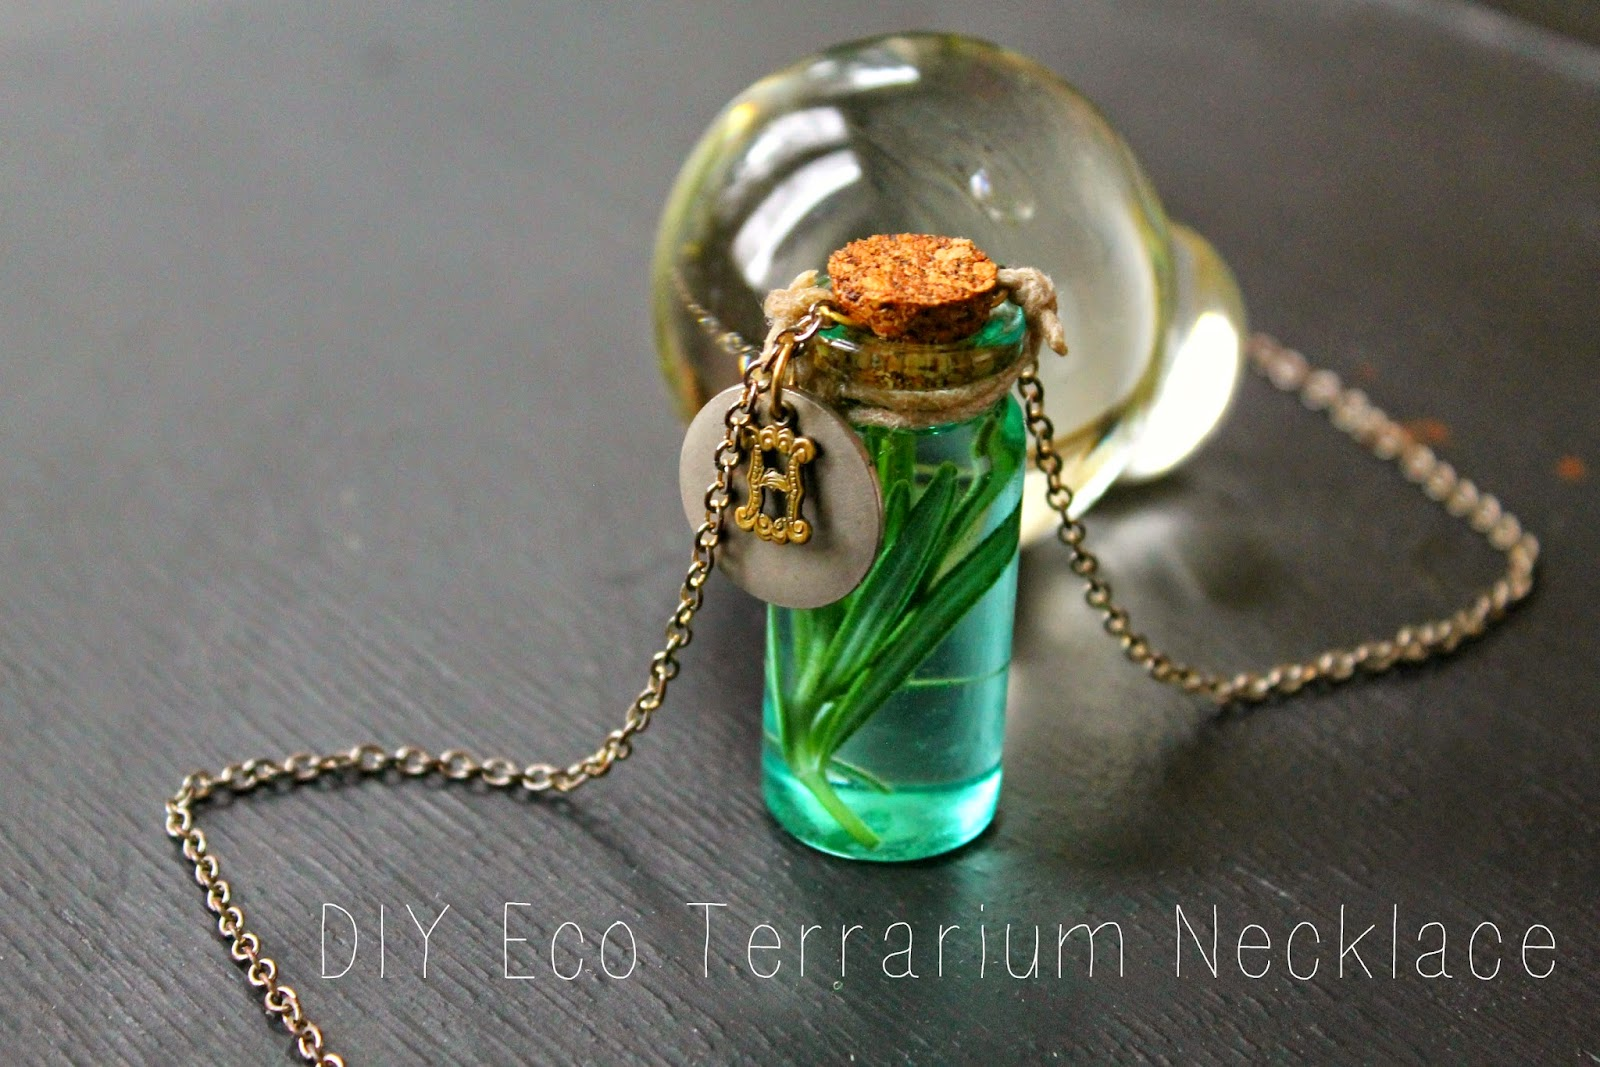 DIY Eco Terrarium Necklace